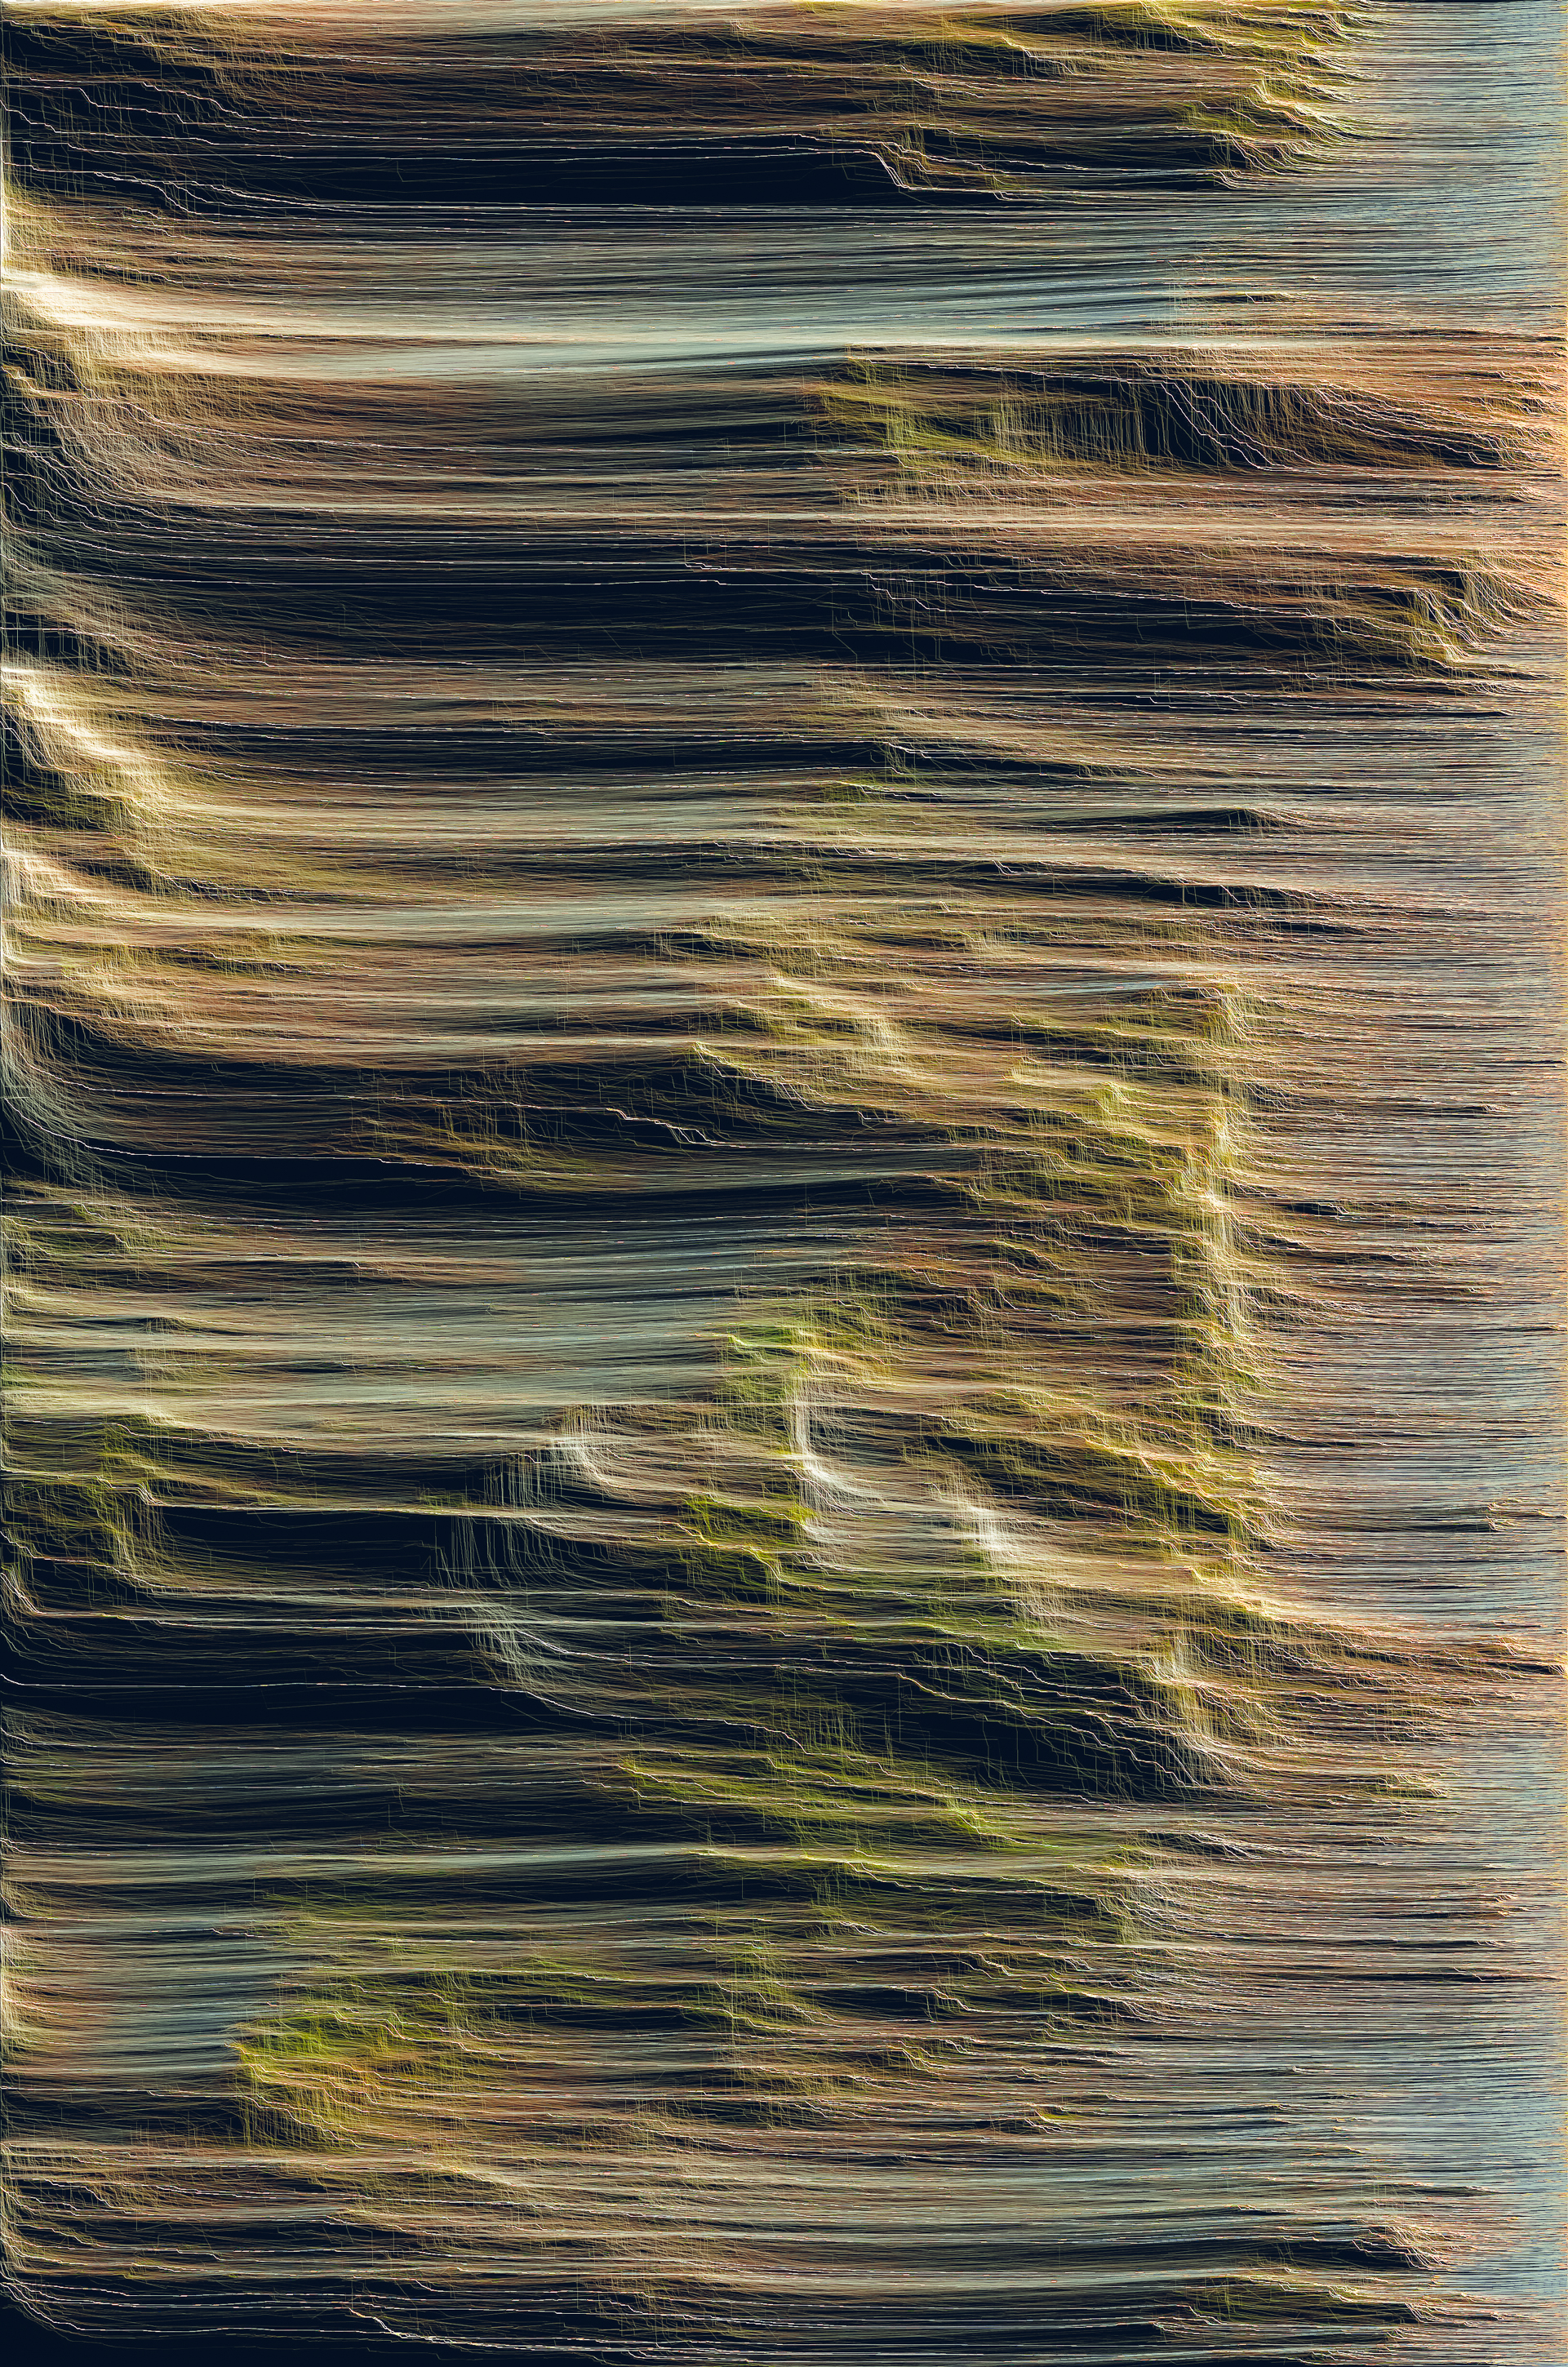 alban_guerry-suire_generative_drawing-009.jpg